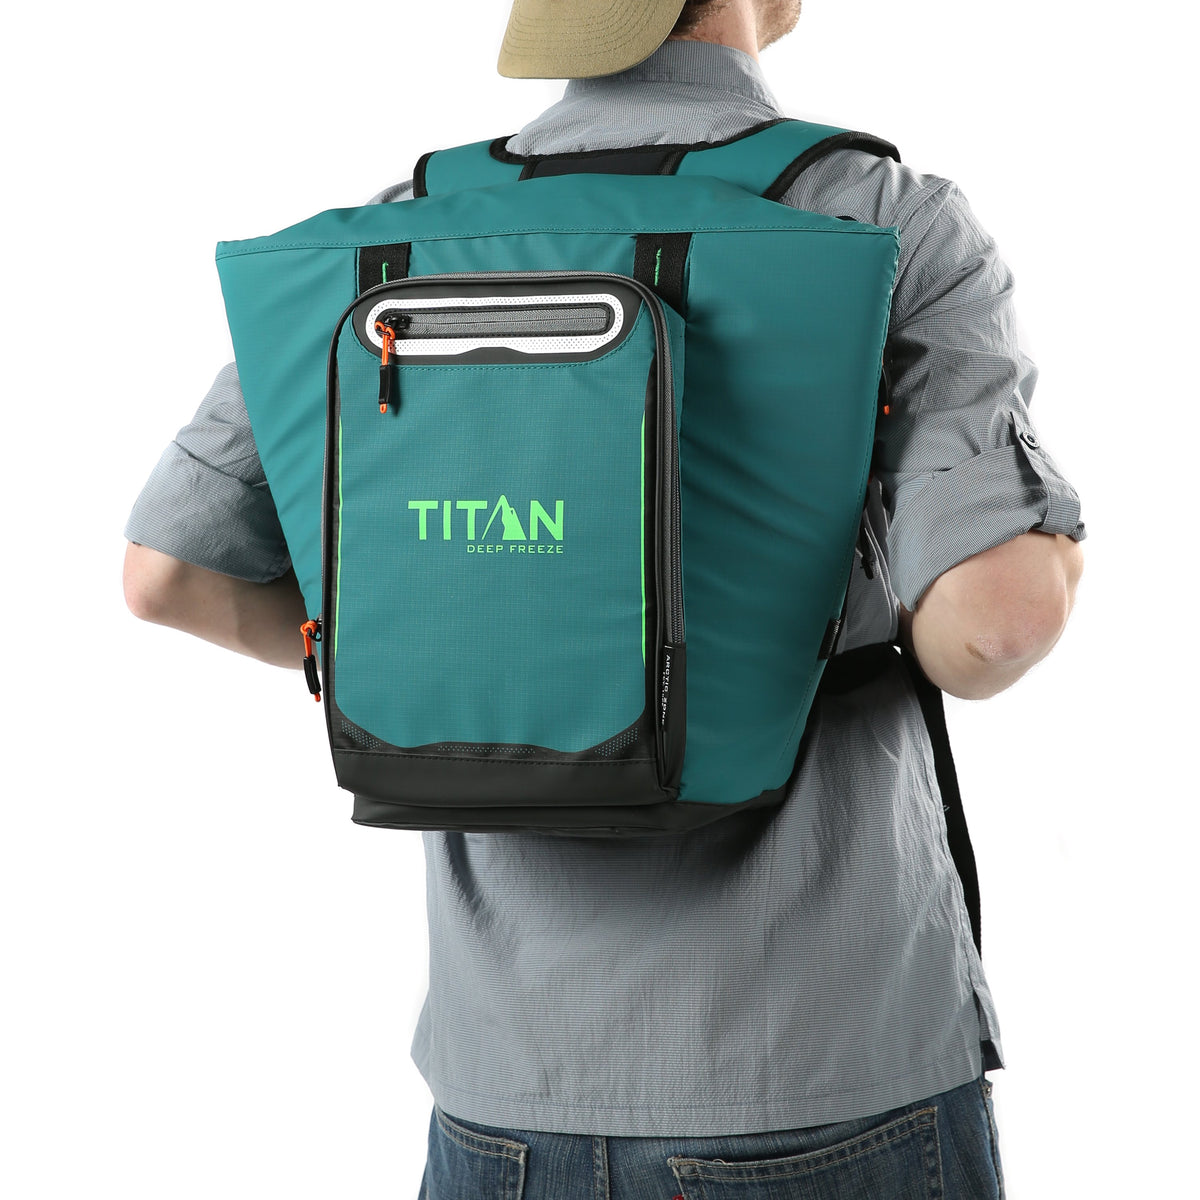 Titan Deep Freeze® 20 Can Rolltop Backpack - Pine - Model wearing backpack cooler